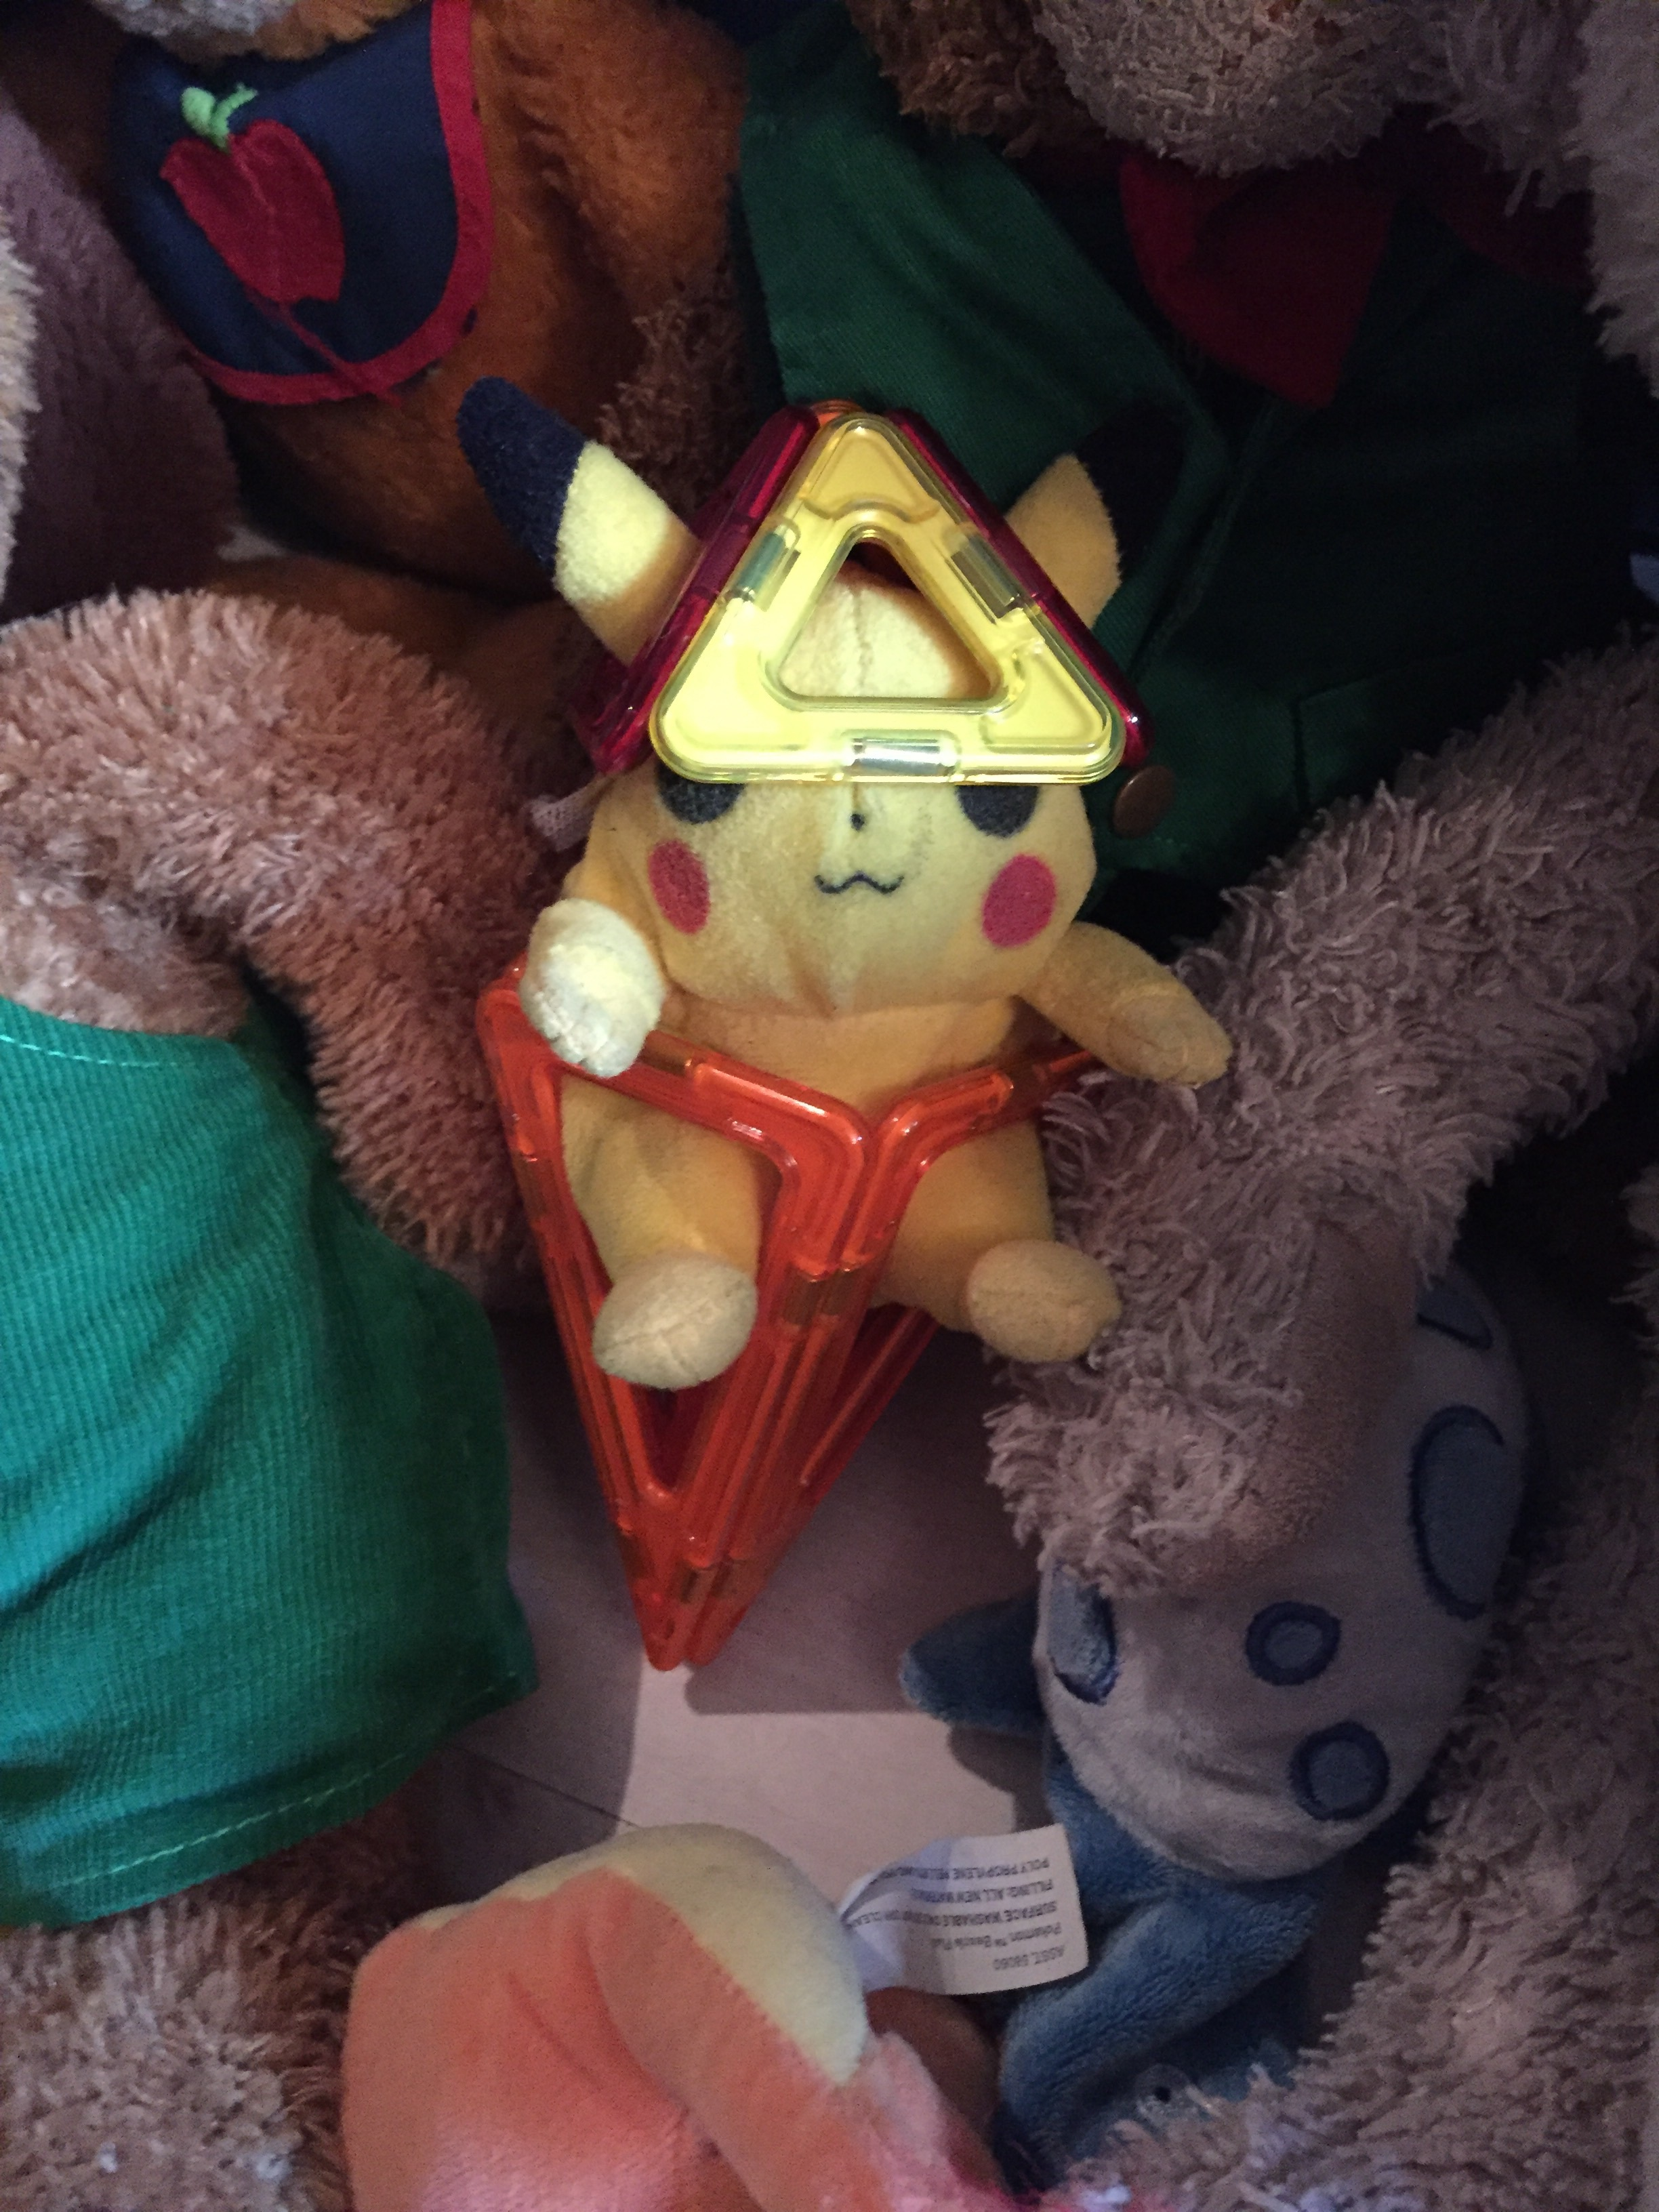 Pikachu is the smallest so Zephyr built him a special flight suit. Interesting since Zephyr is the smallest in his class.